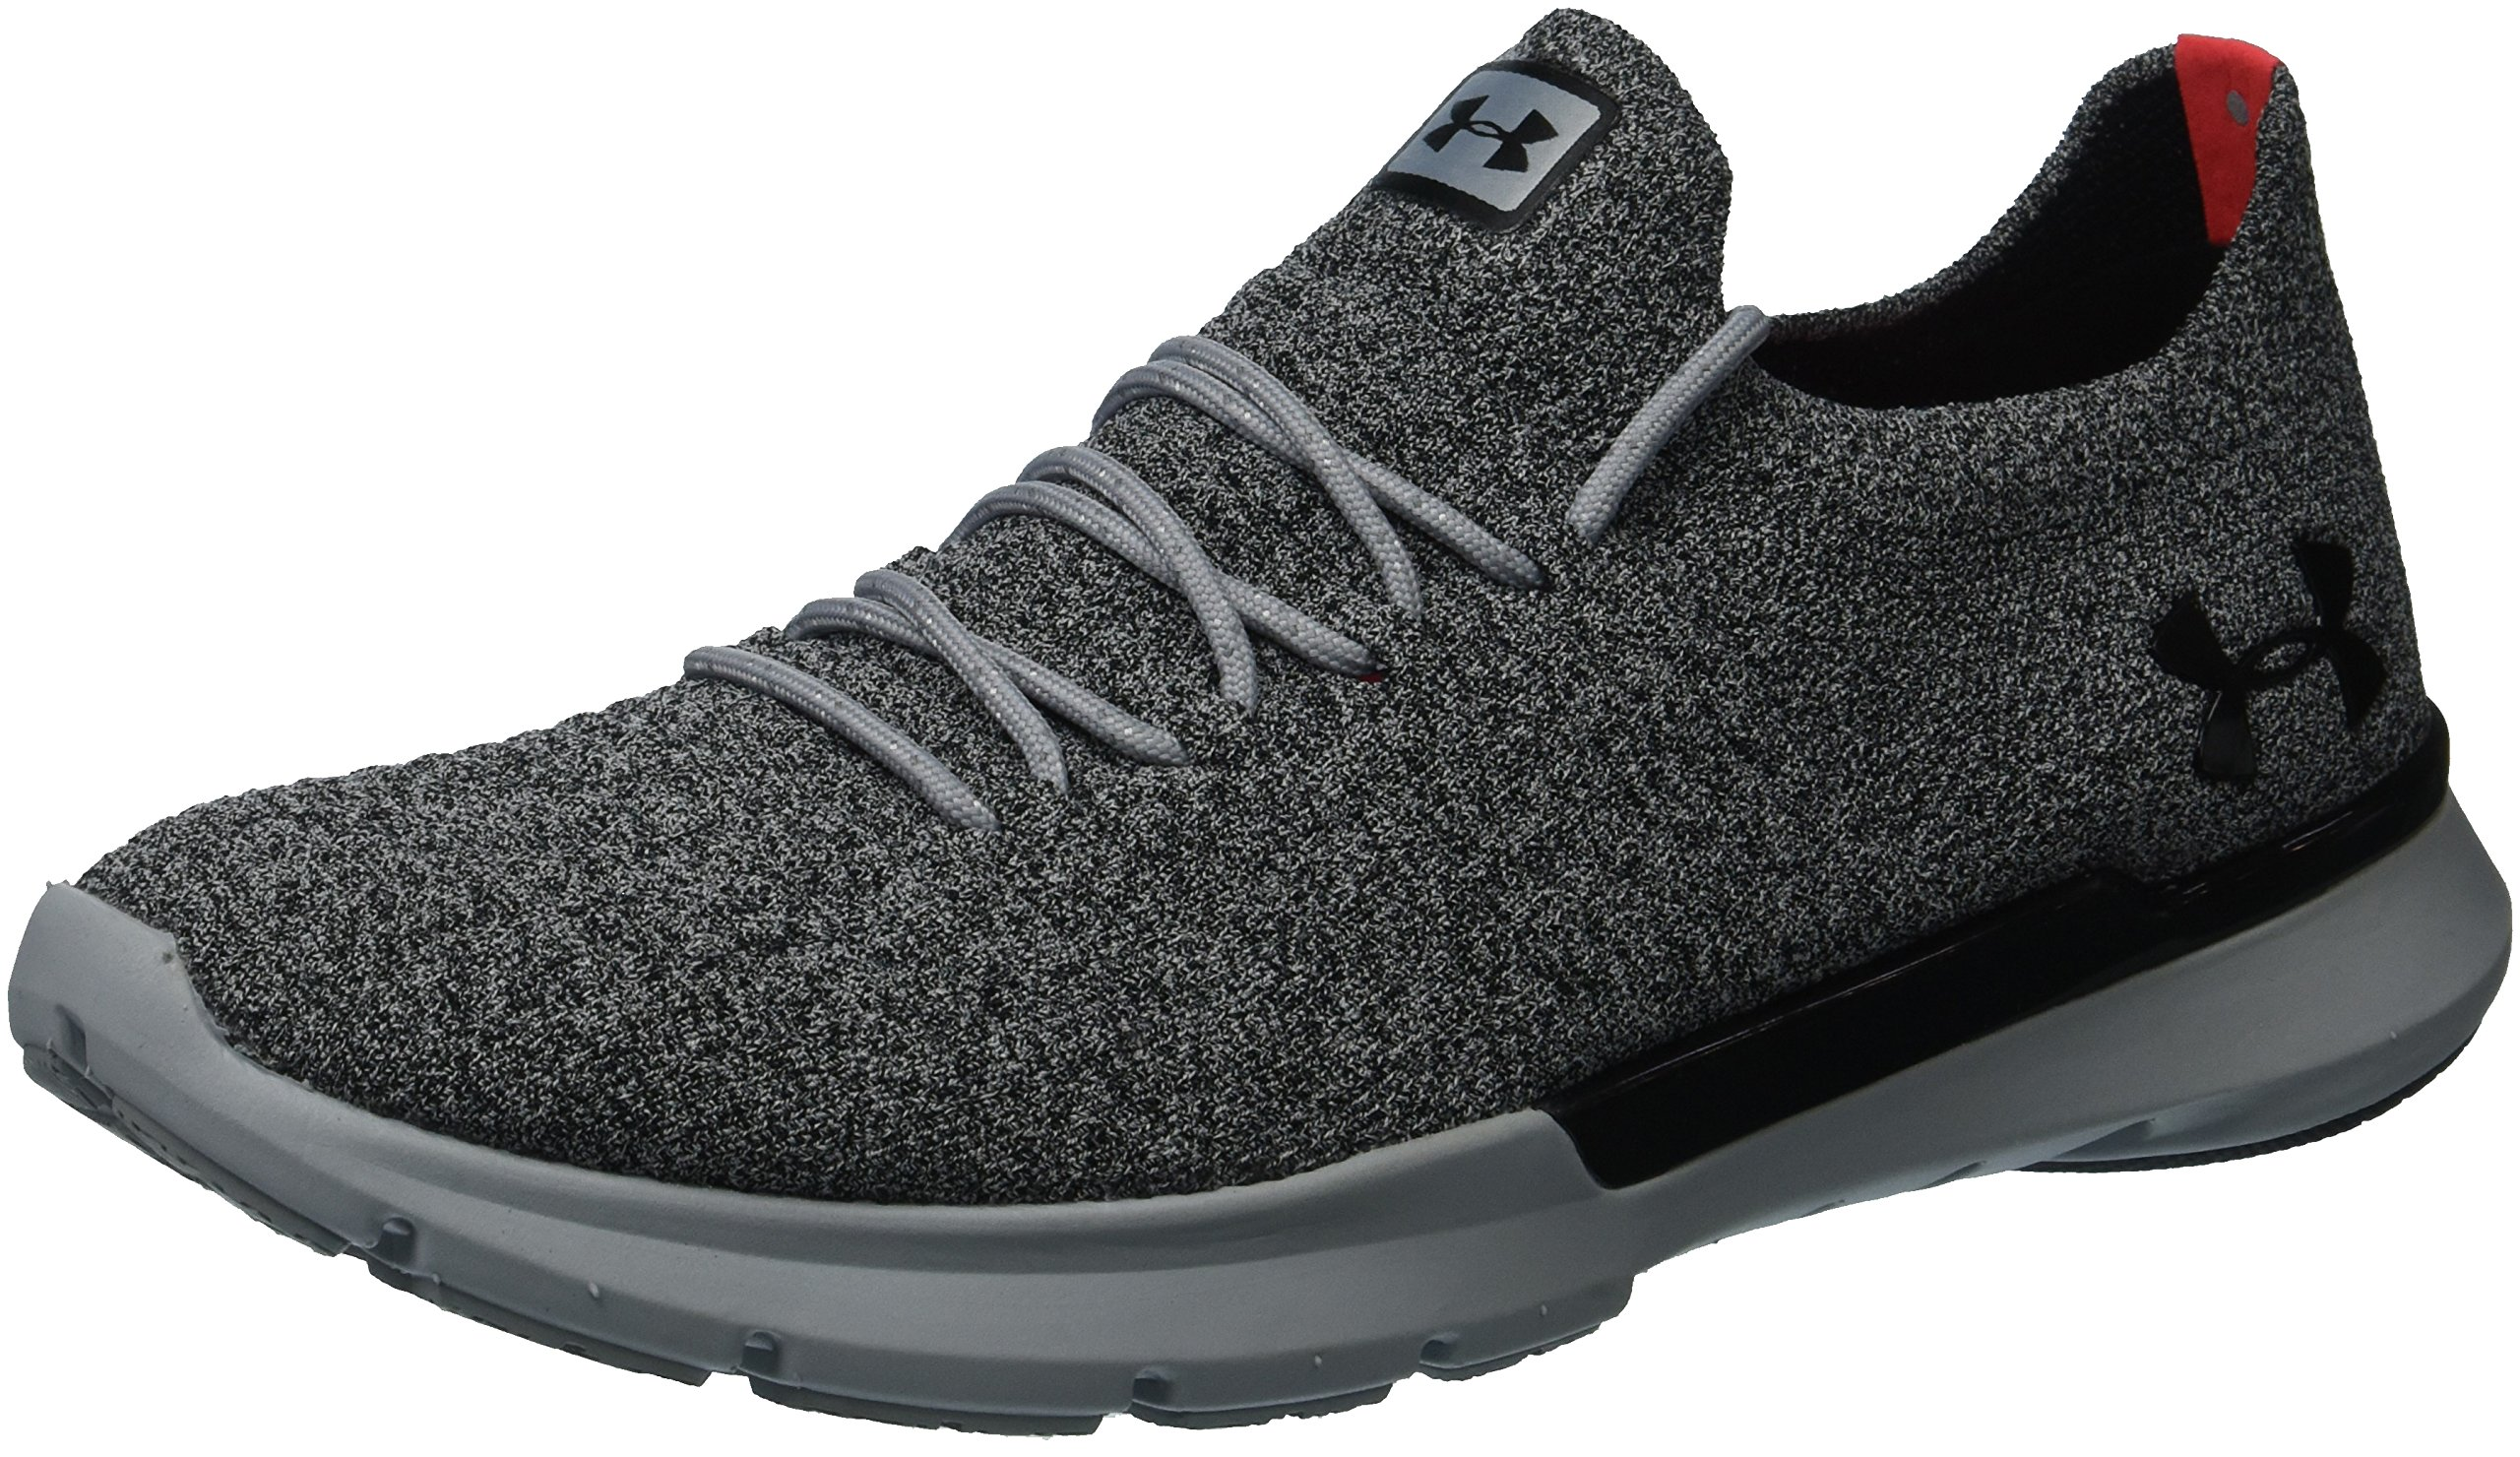 Under Armour Women's Slingwrap Phase Sneaker, Gray, 6.5